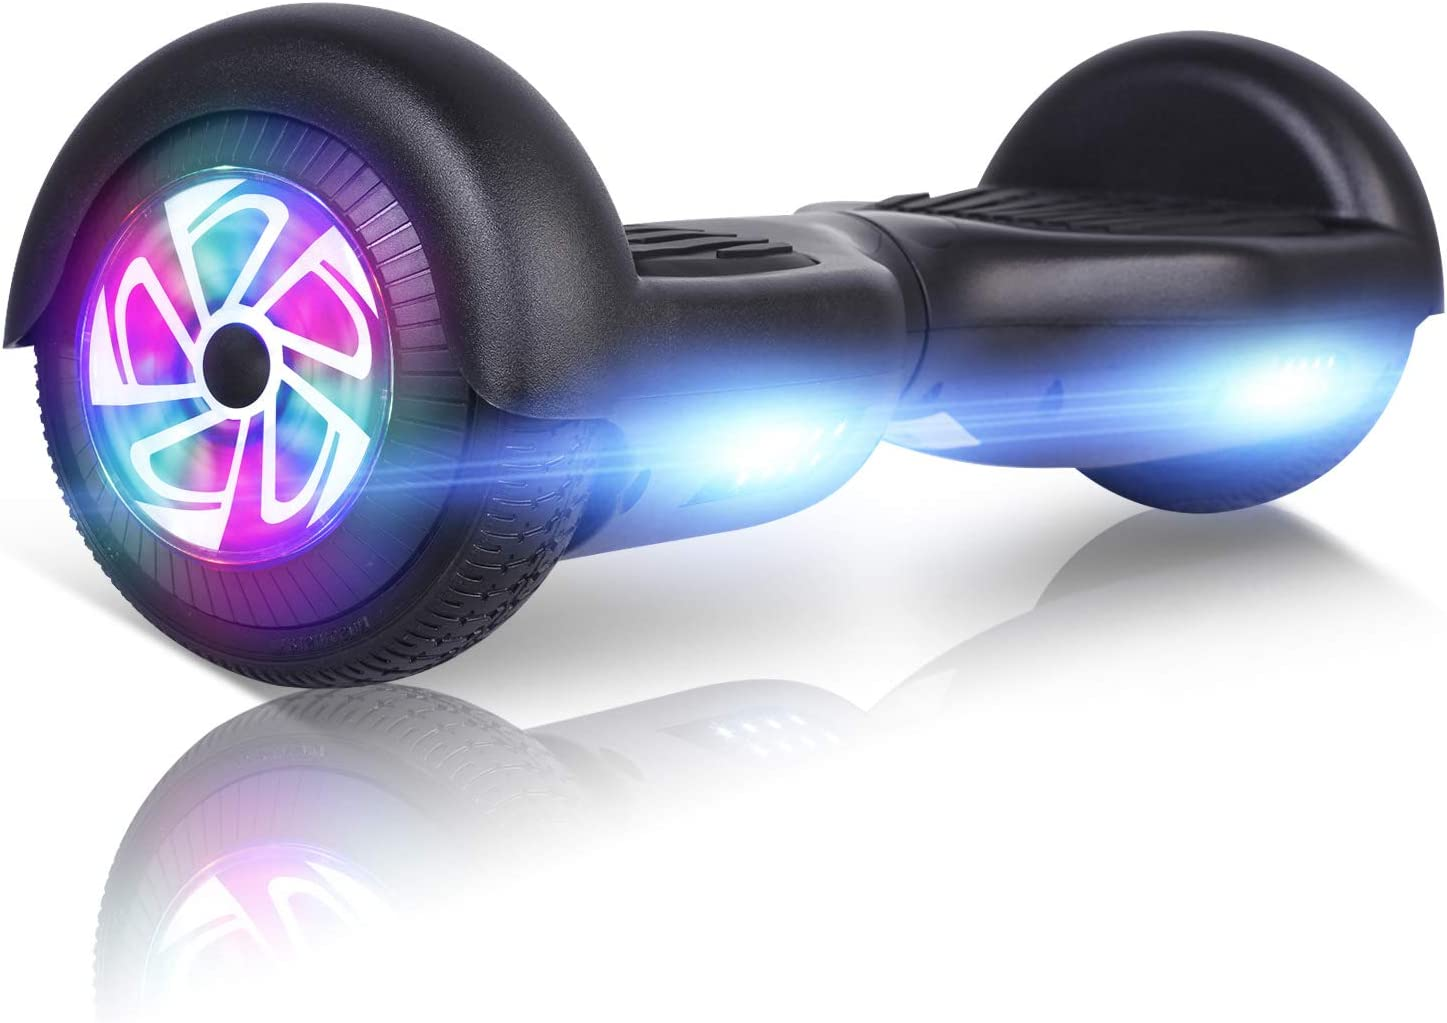 FLYING-ANT Hoverboard, 6.5 Inch Self Balancing Hoverboards Black / US